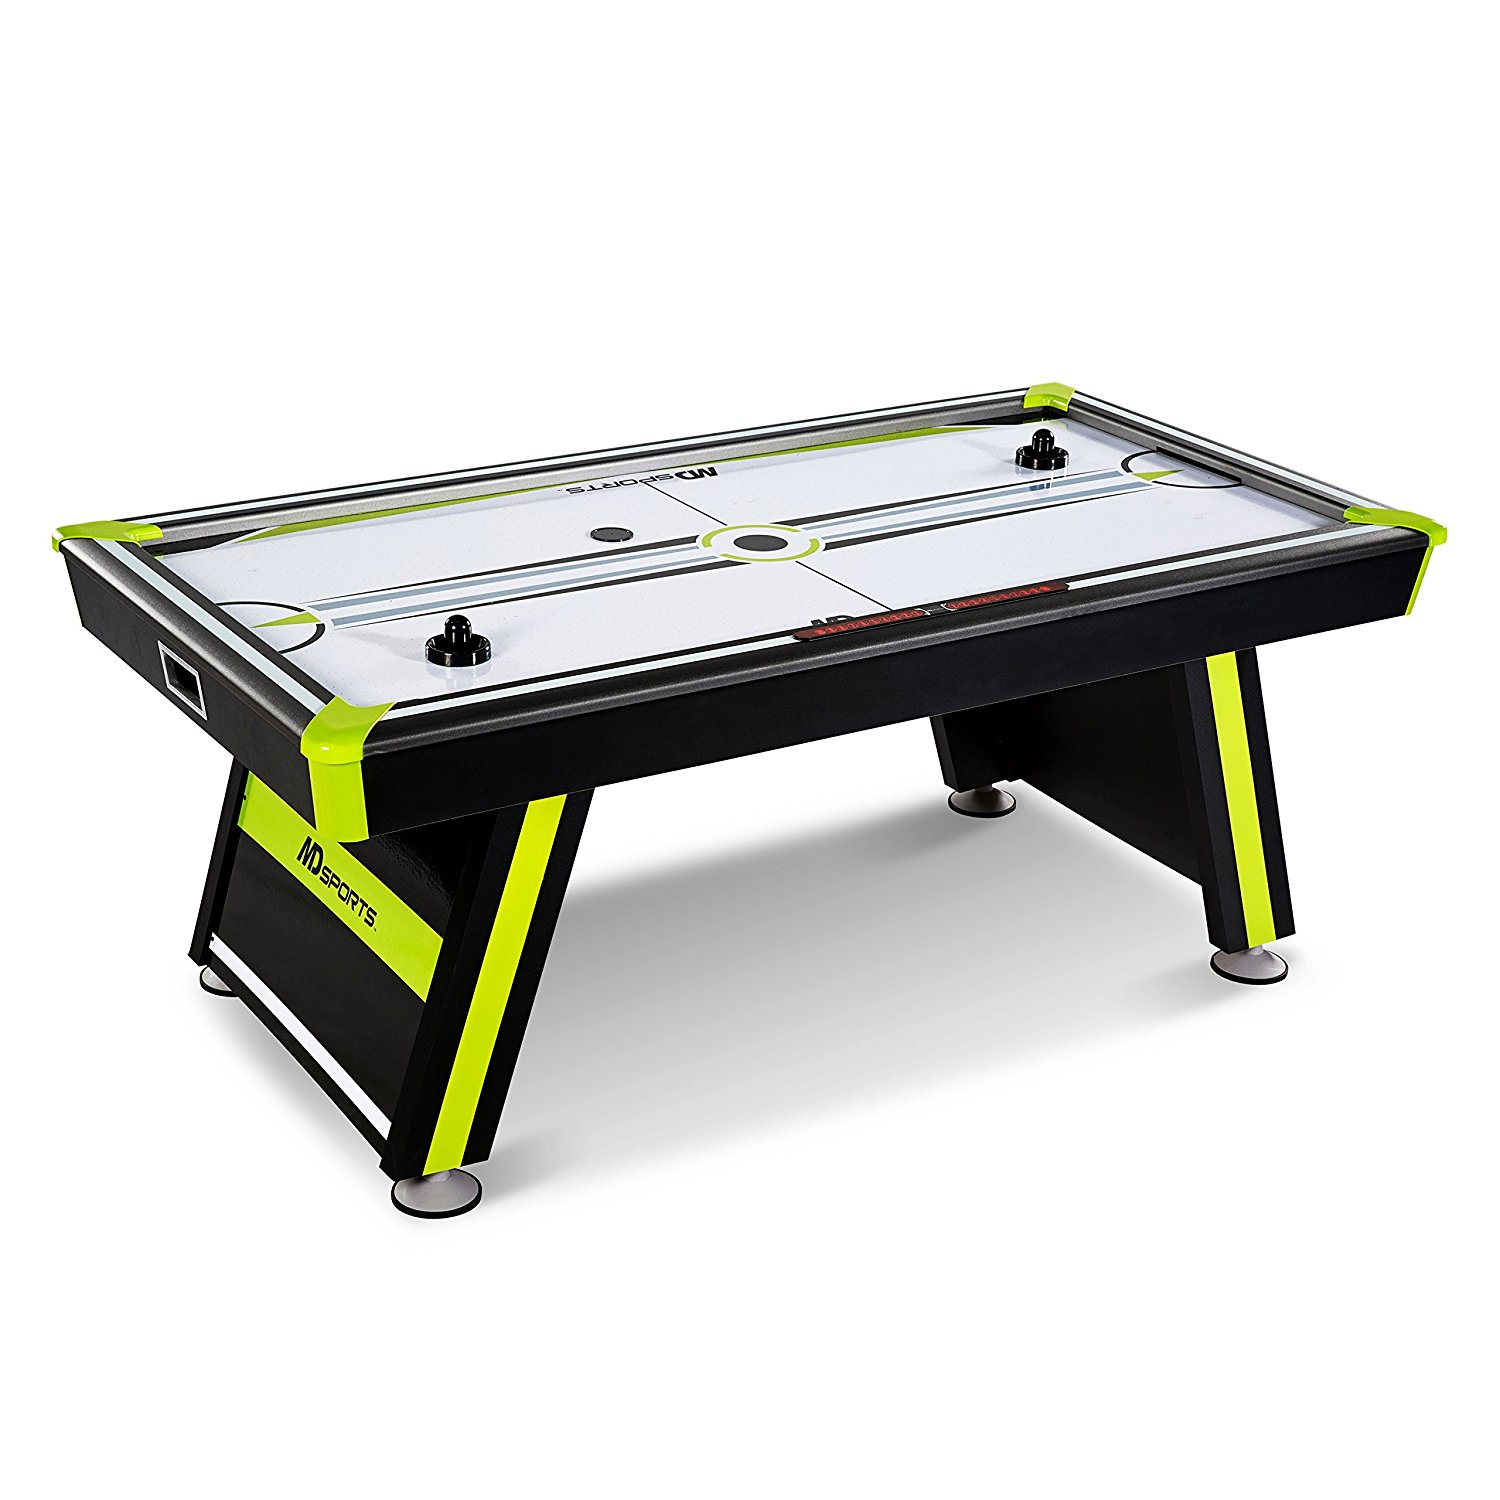 Save On Ping Pong Foosball And Air Hockey Tables From Amazon - Pool table price amazon